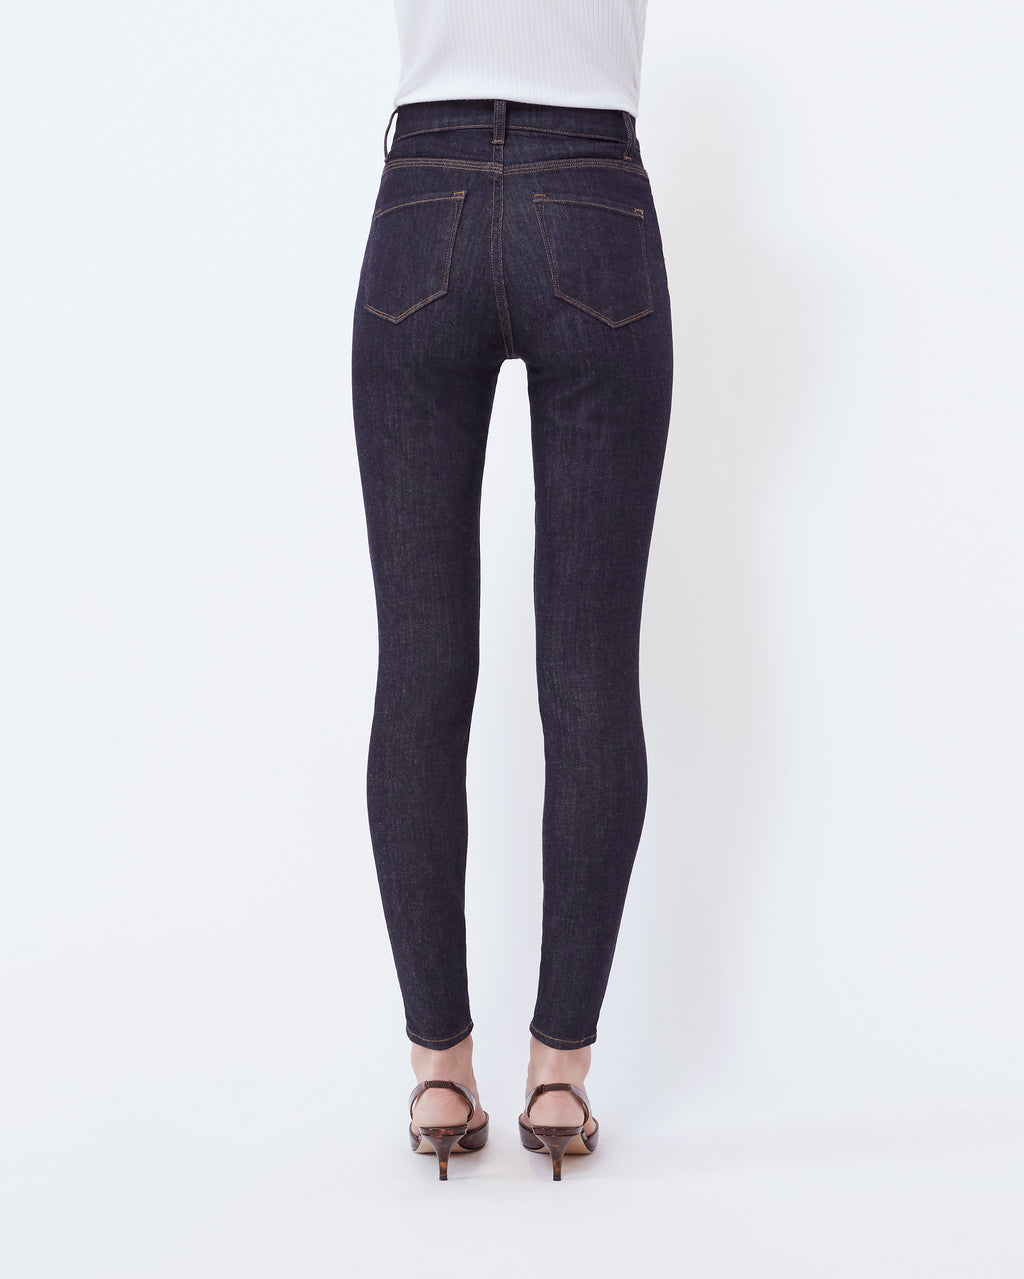 The Ultra High Rise Skinny Jean In Abyss